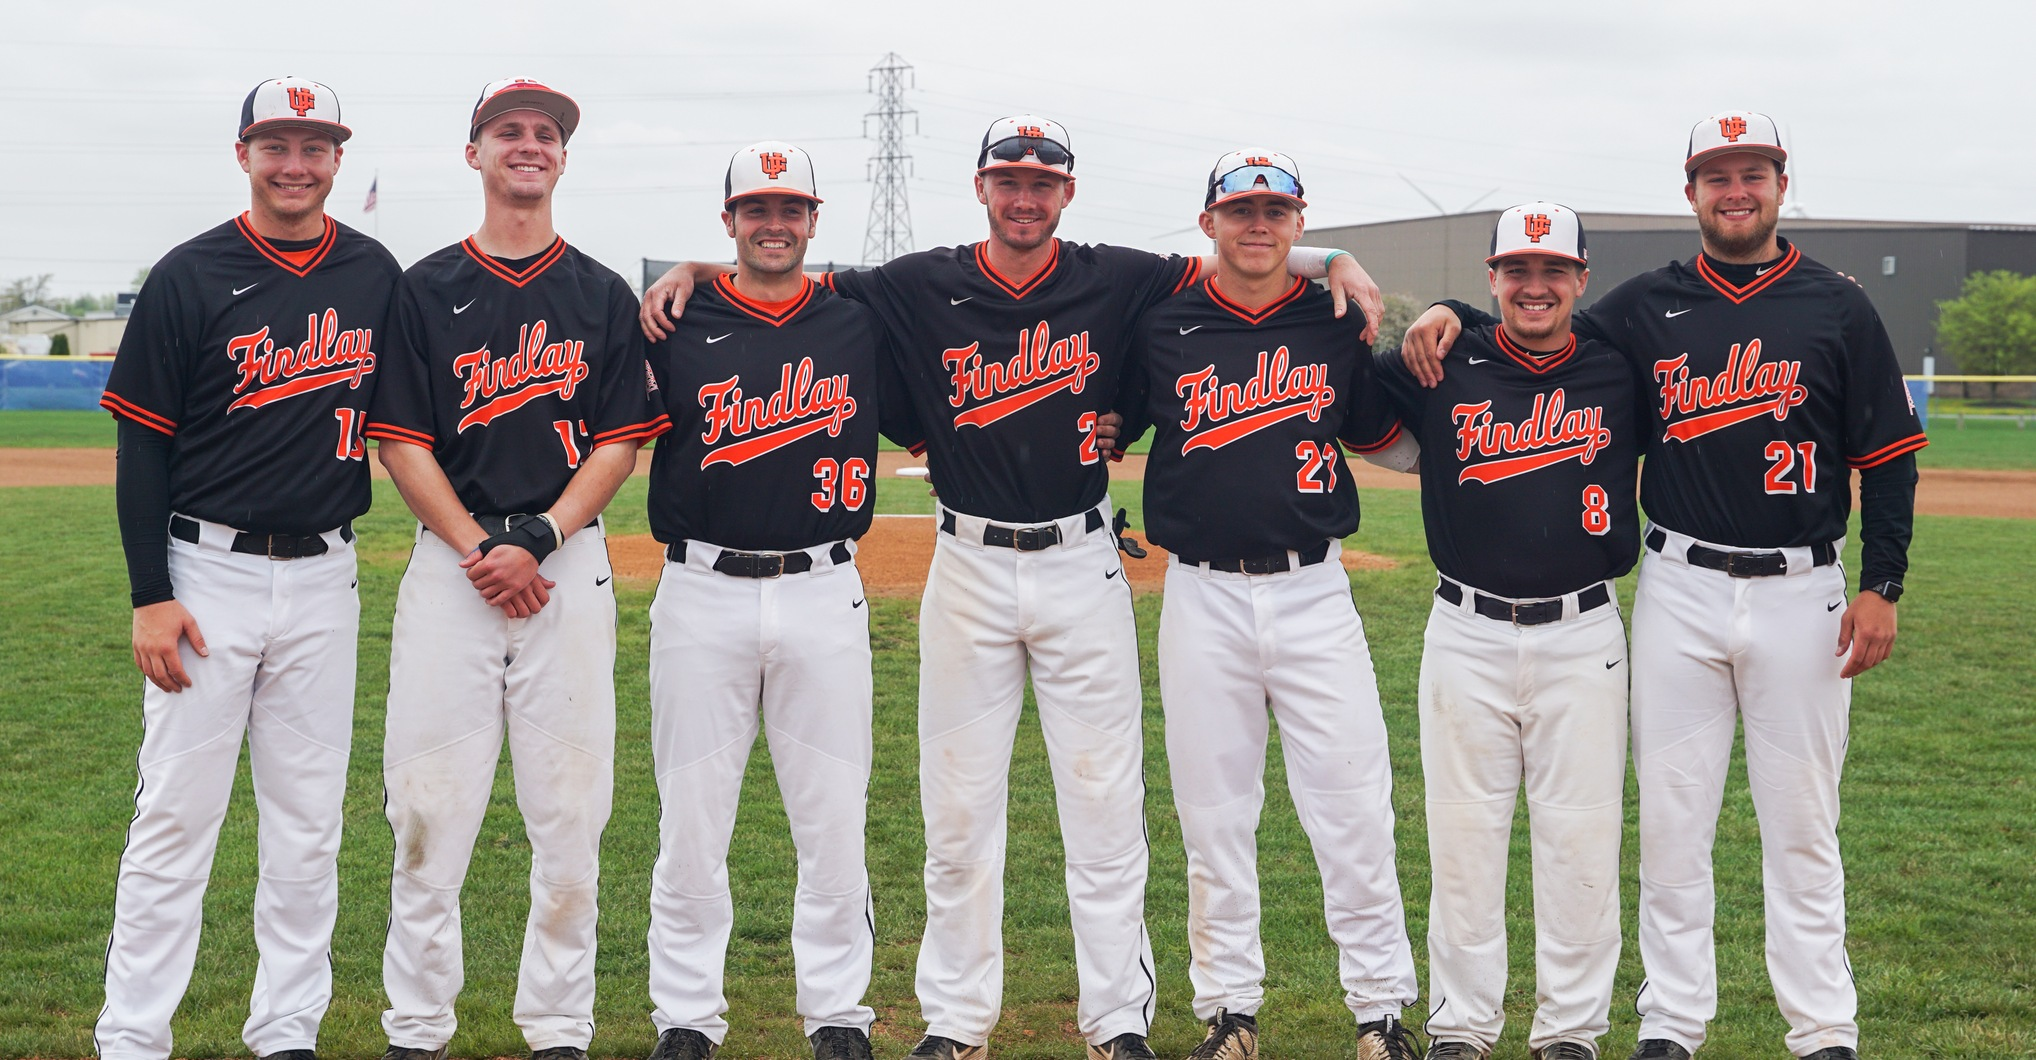 Memorable Moments Highlight Senior Day Split with Cedarville